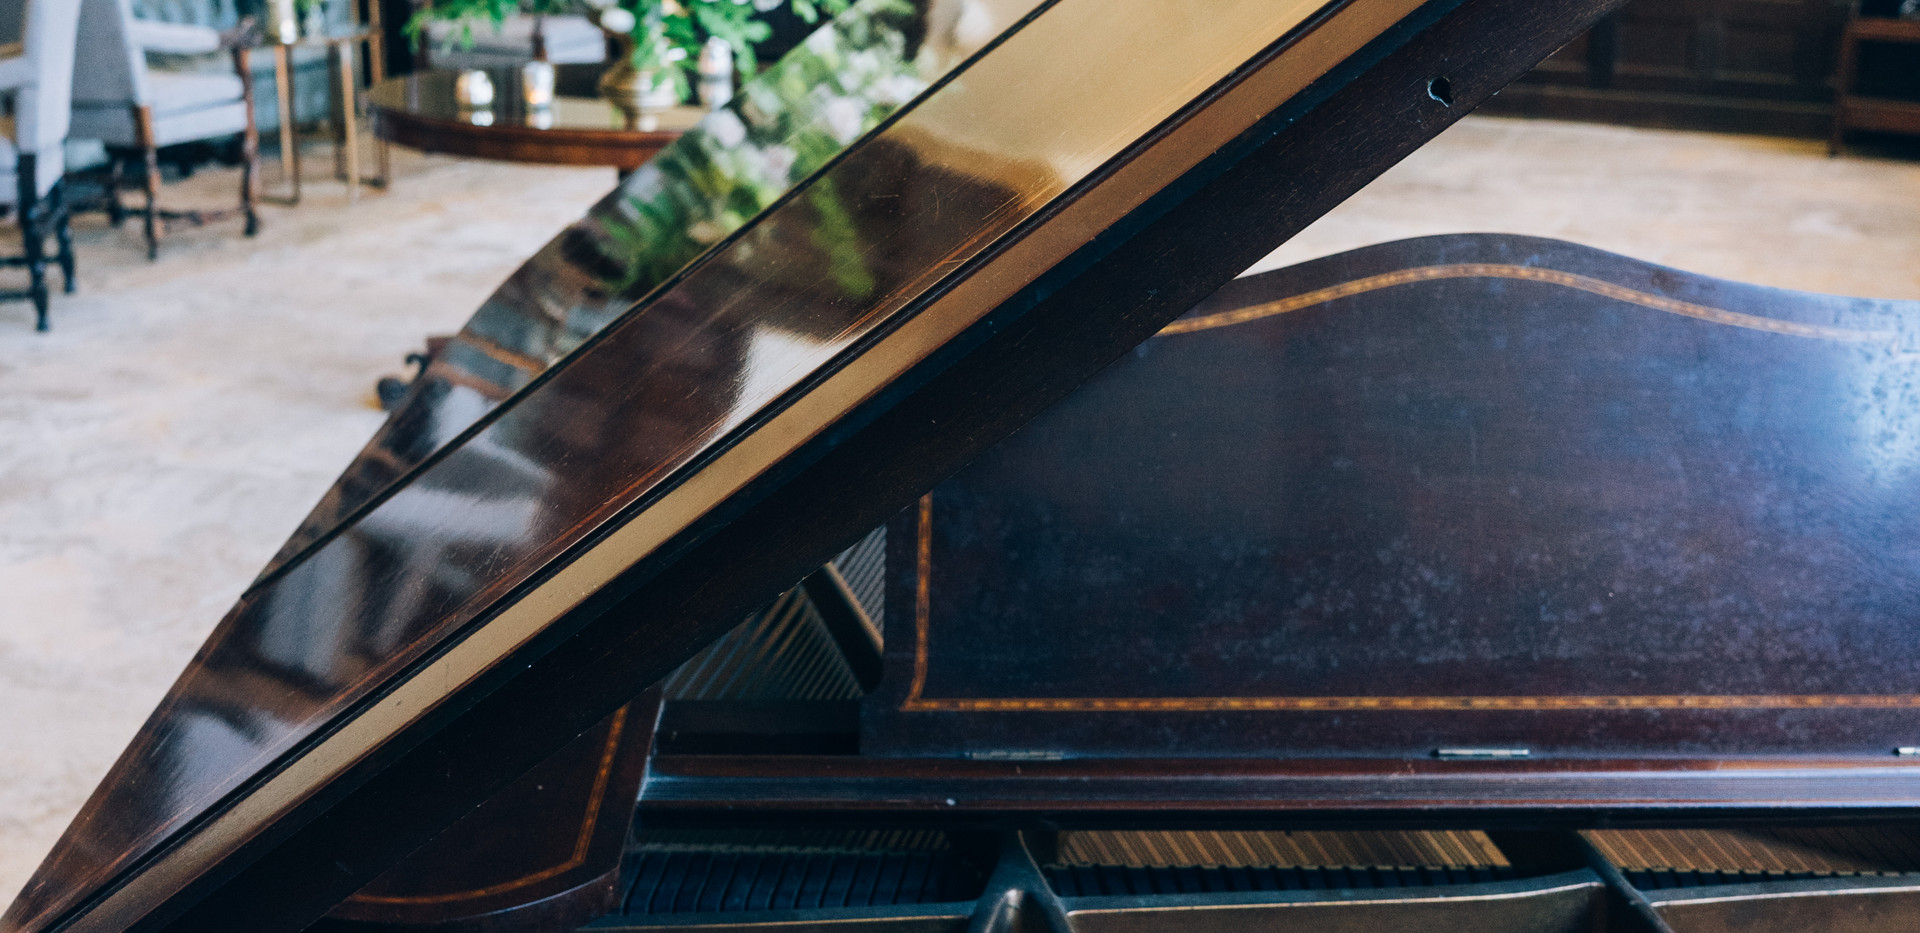 There is a baby grand piano available for use during the drinks reception in the Great Hall